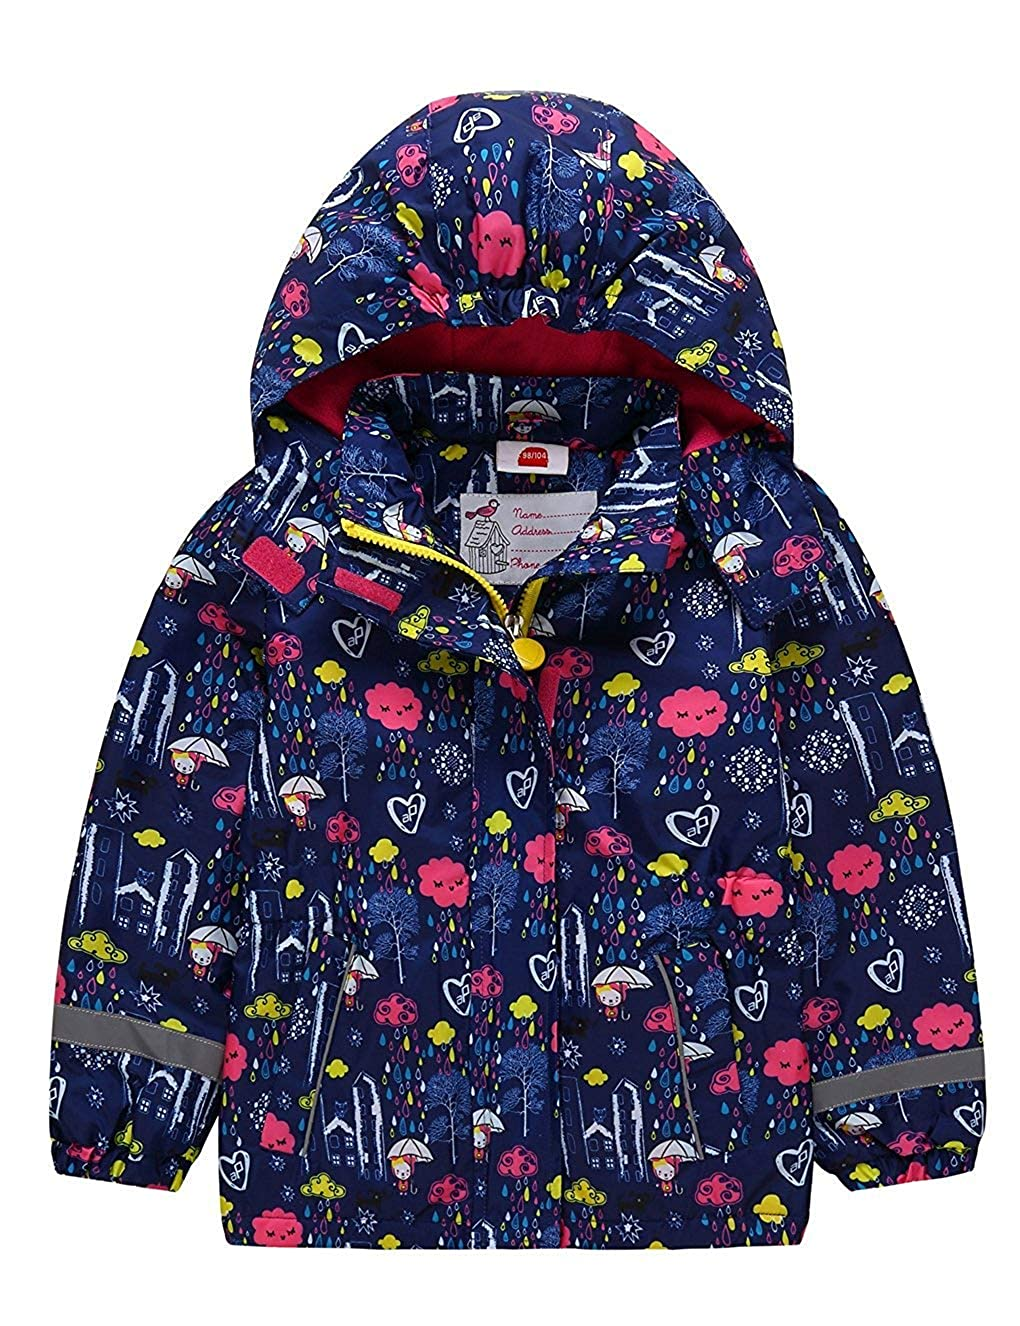 Girls Waterproof Hooded Fall Winter Camping Jacket Raincoat Fleece Windbreaker Outwear